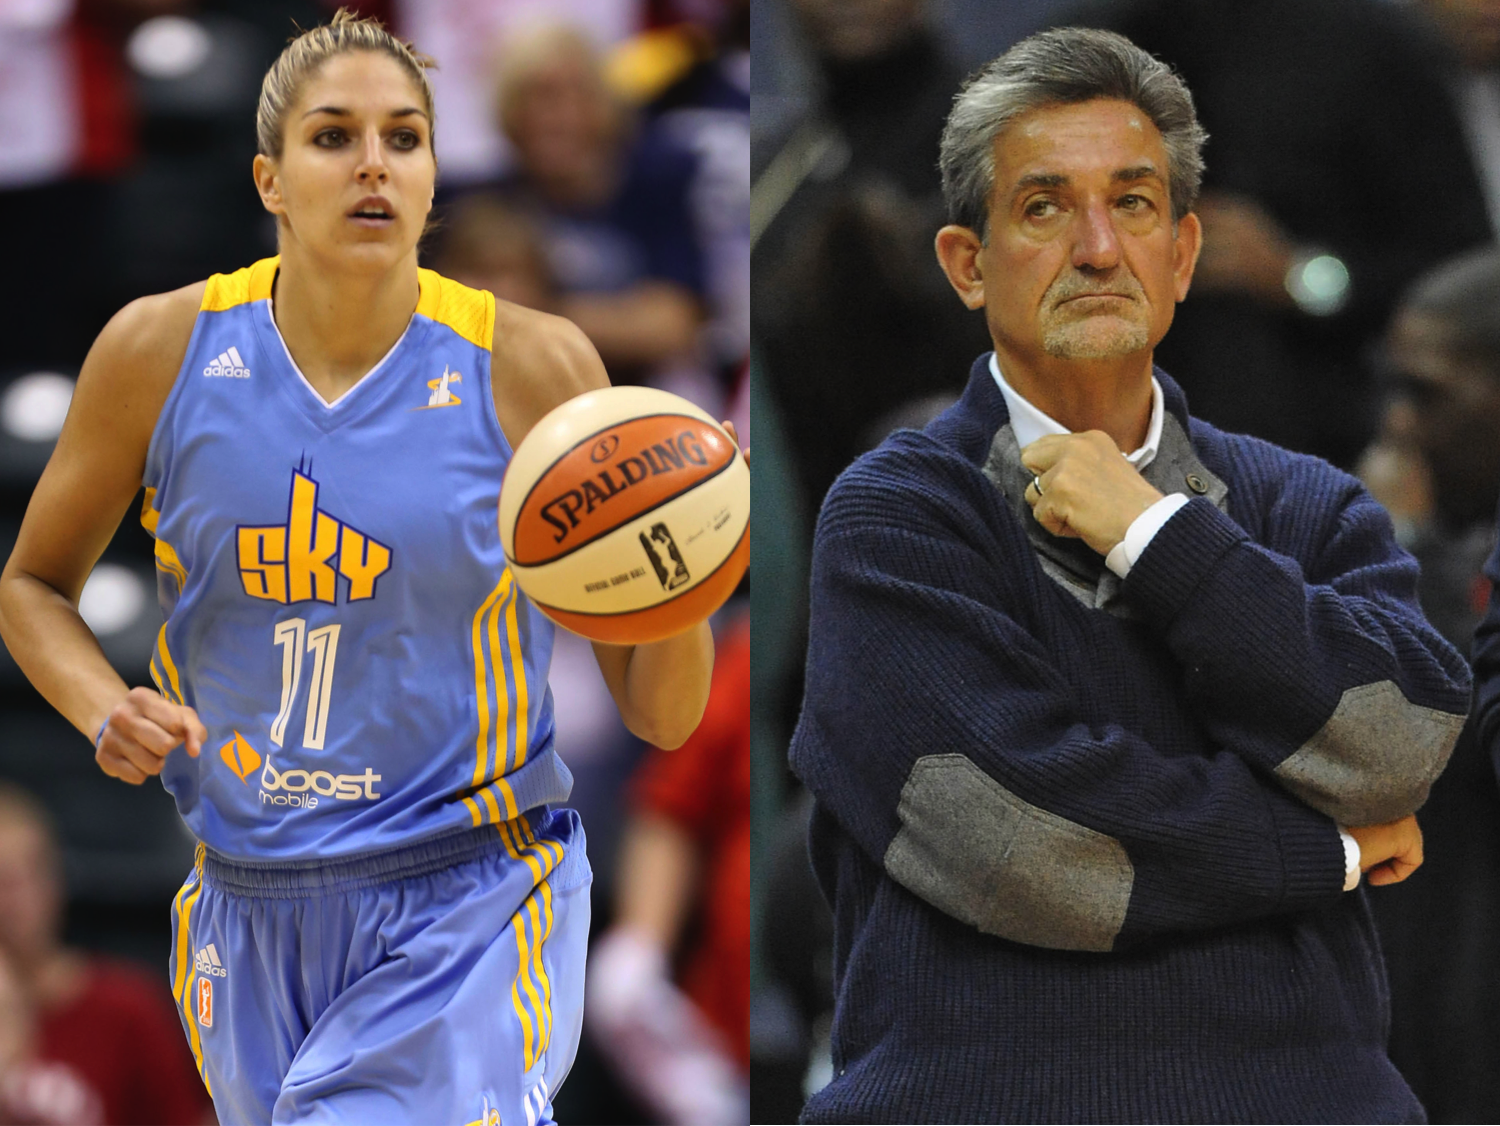 Elena Delle Donne and the Chicago Sky are showing that Washington Mystics owner Ted Leonsis' Ten Point Rebuilding Plan can work in the WNBA.